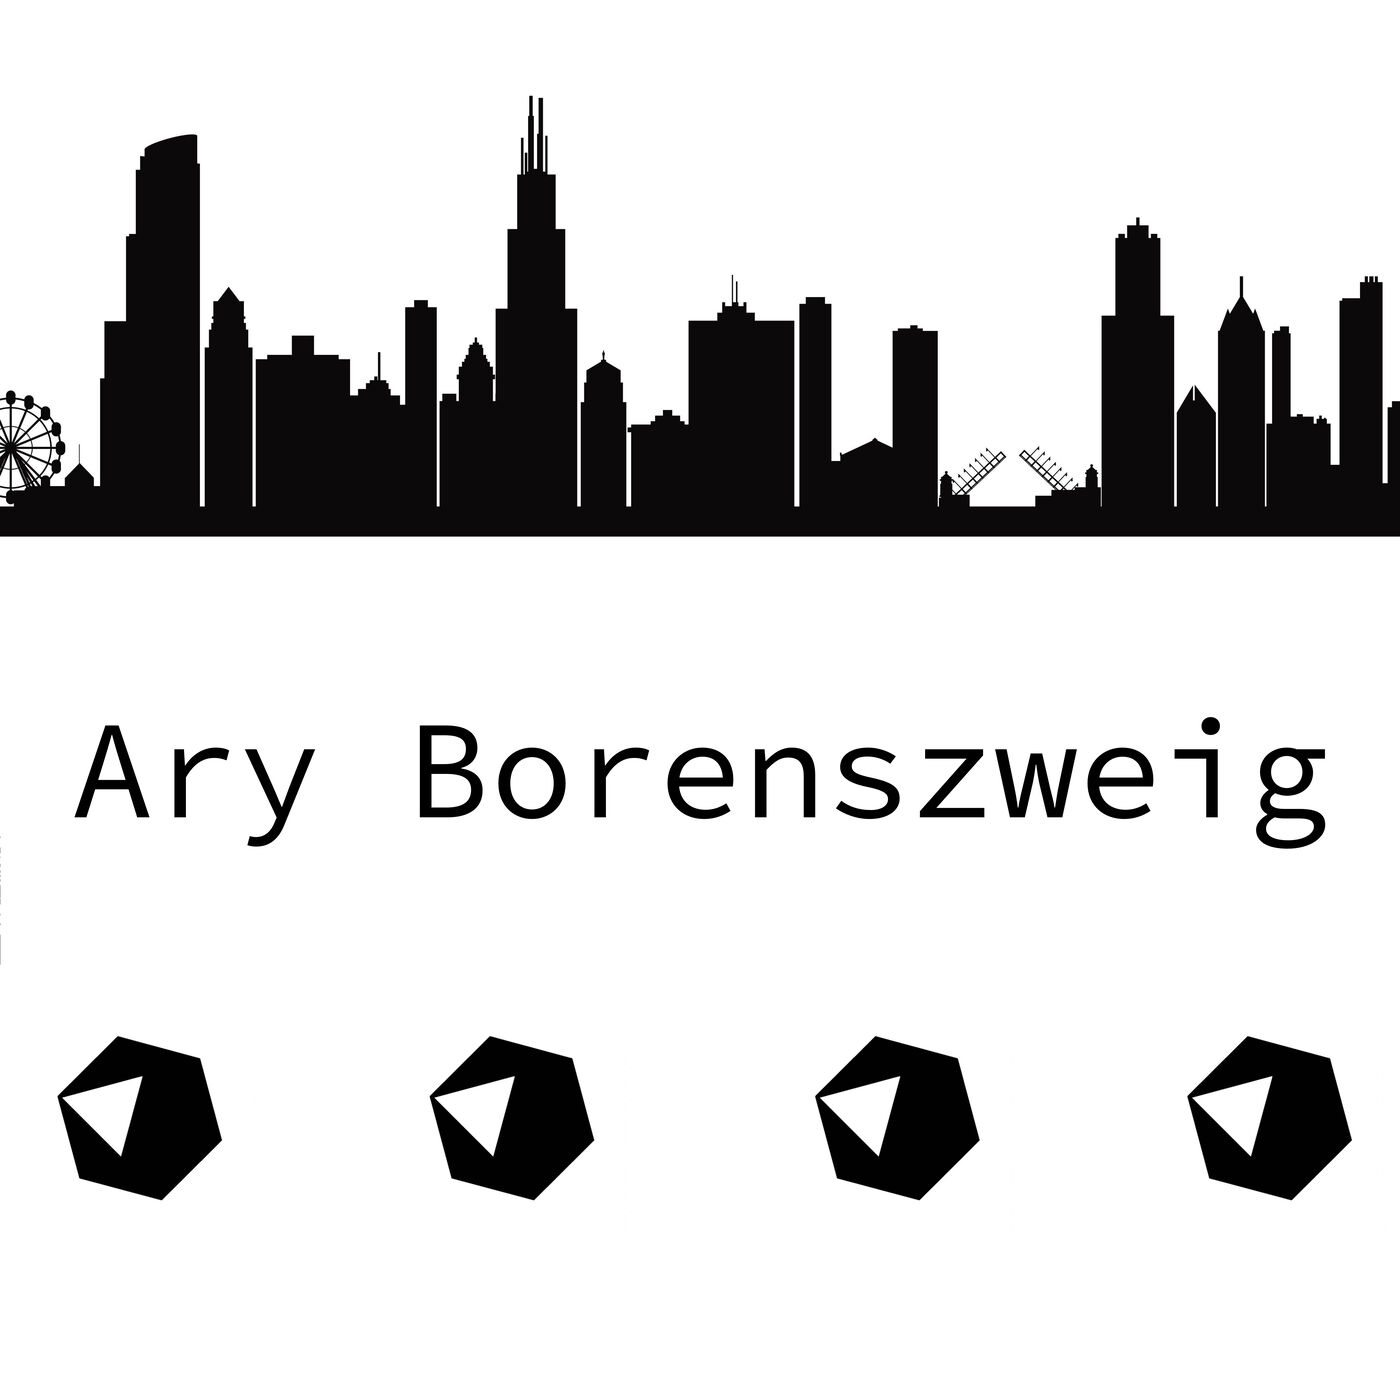 Ary Borenszweig: Origins of Crystal